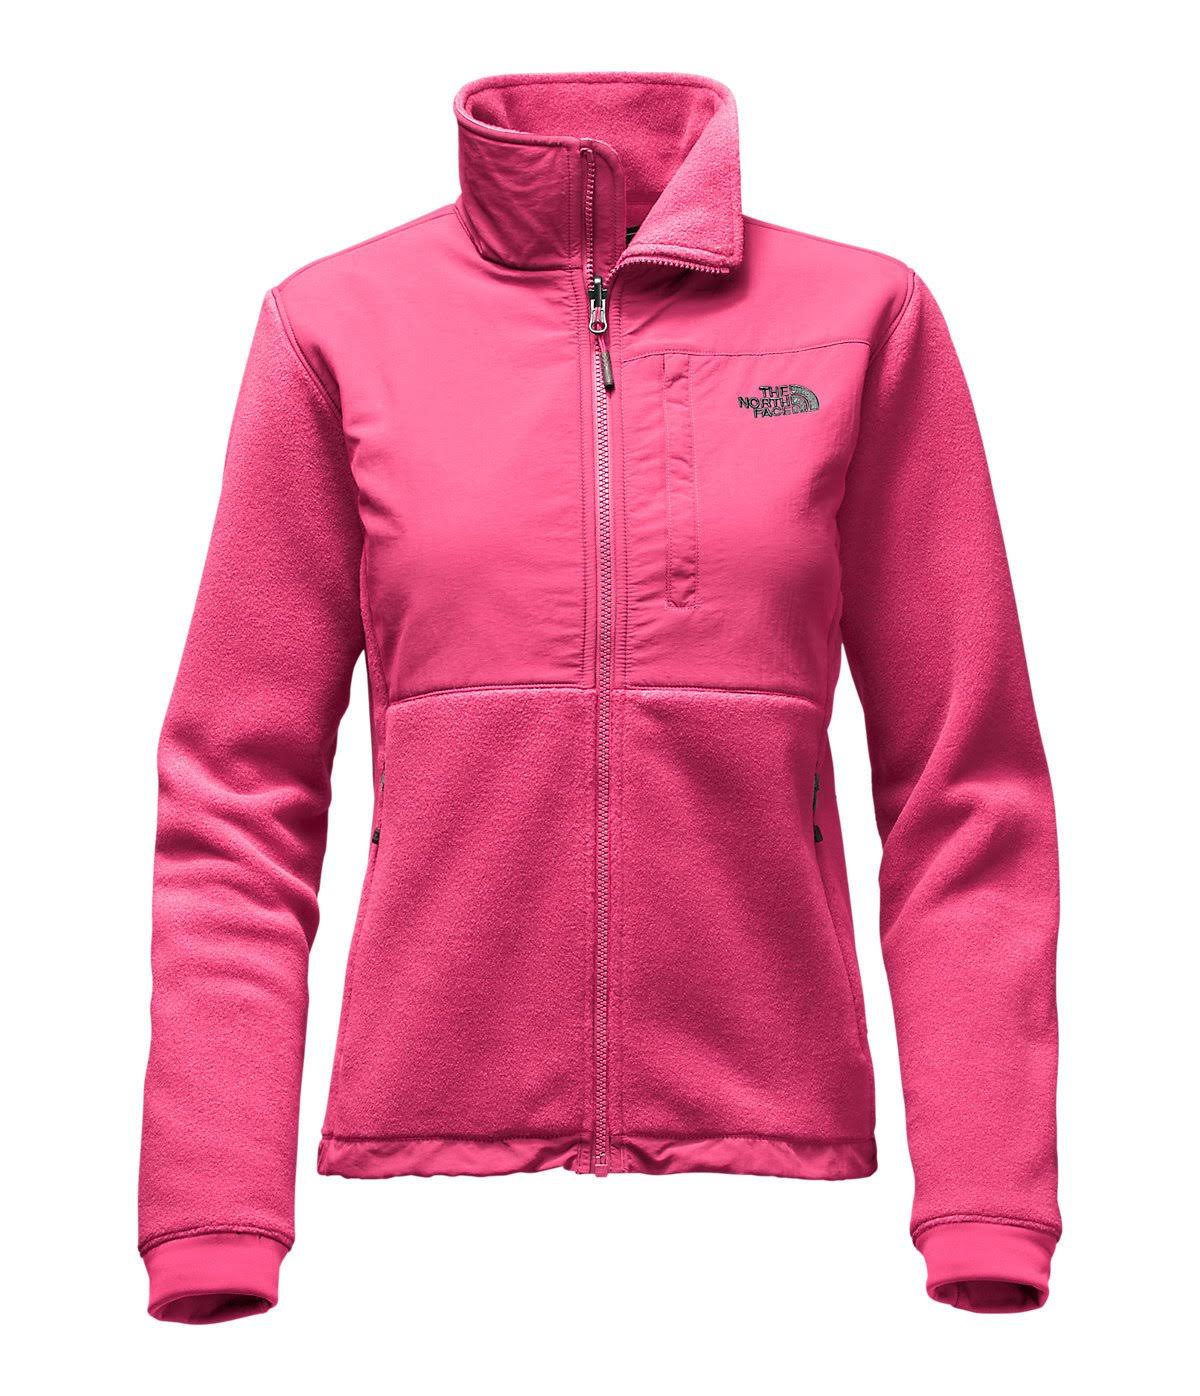 2 Cerise North Mujer M Rosa Face De Denali The Chaqueta gfRwq5vP